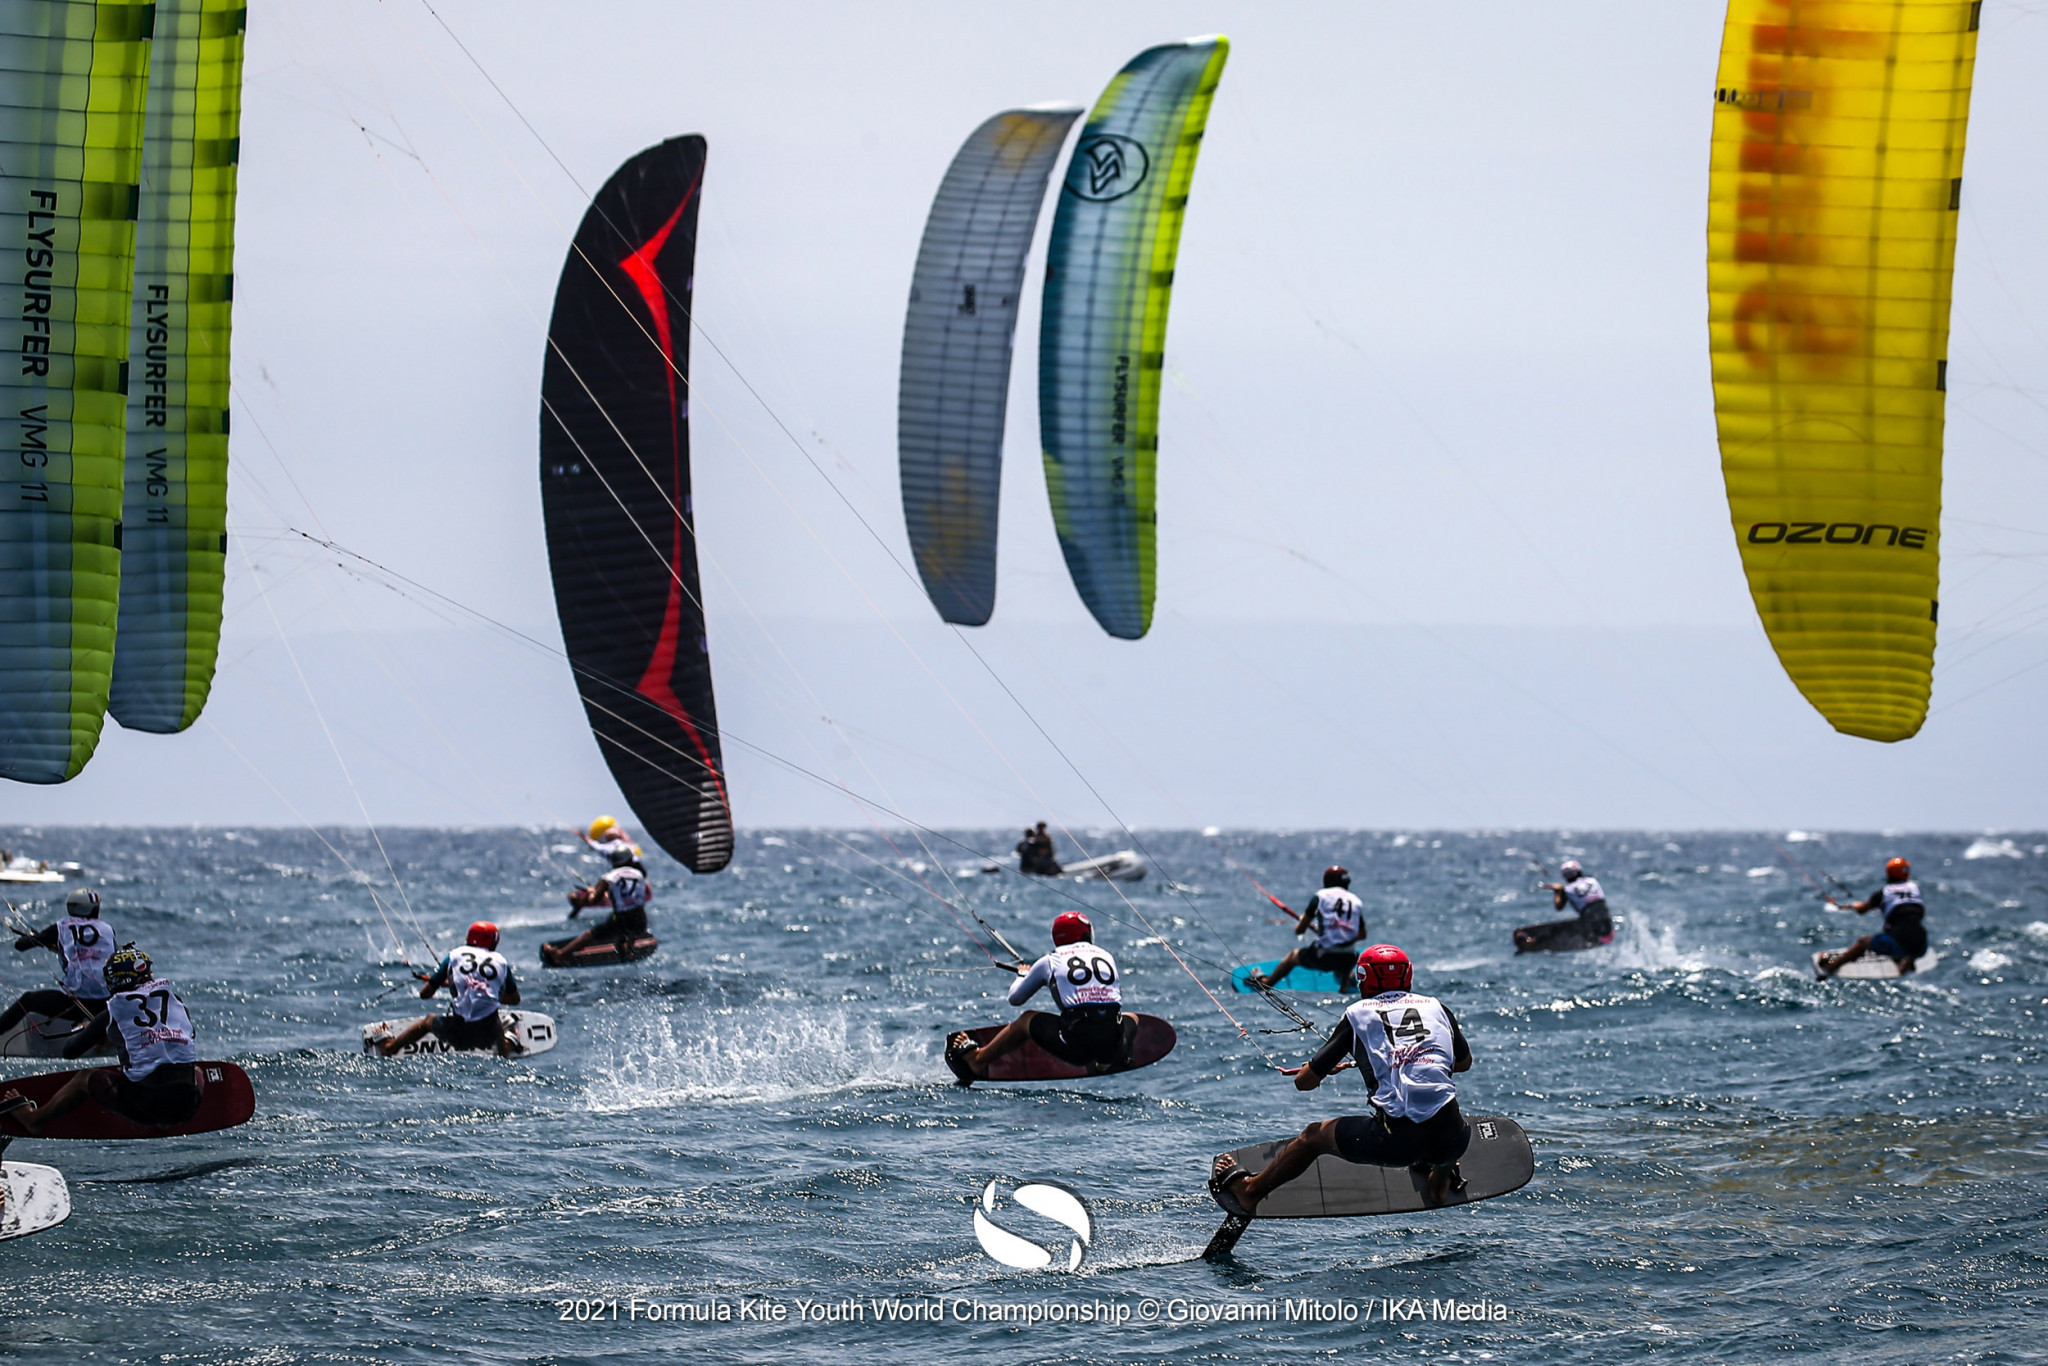 Damasiewicz and Maeder early leaders at Formula Kite Under-19 World Championships